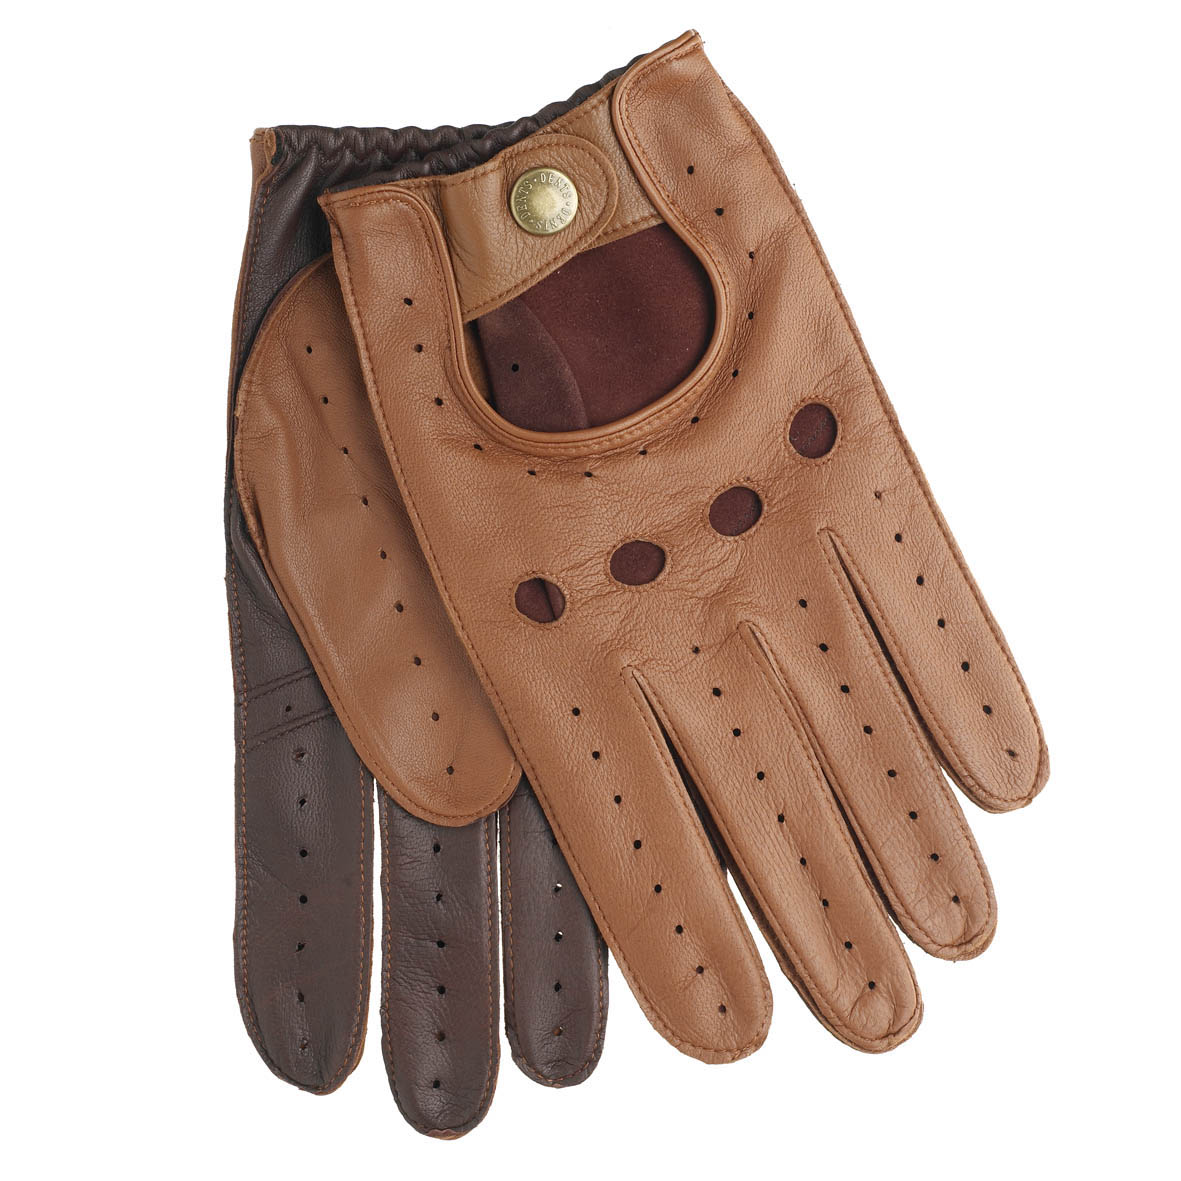 Mens leather driving gloves australia - Driving Gloves Coach Image Is Loading Dents Leather Driving Gloves 5 1021 Cognac English